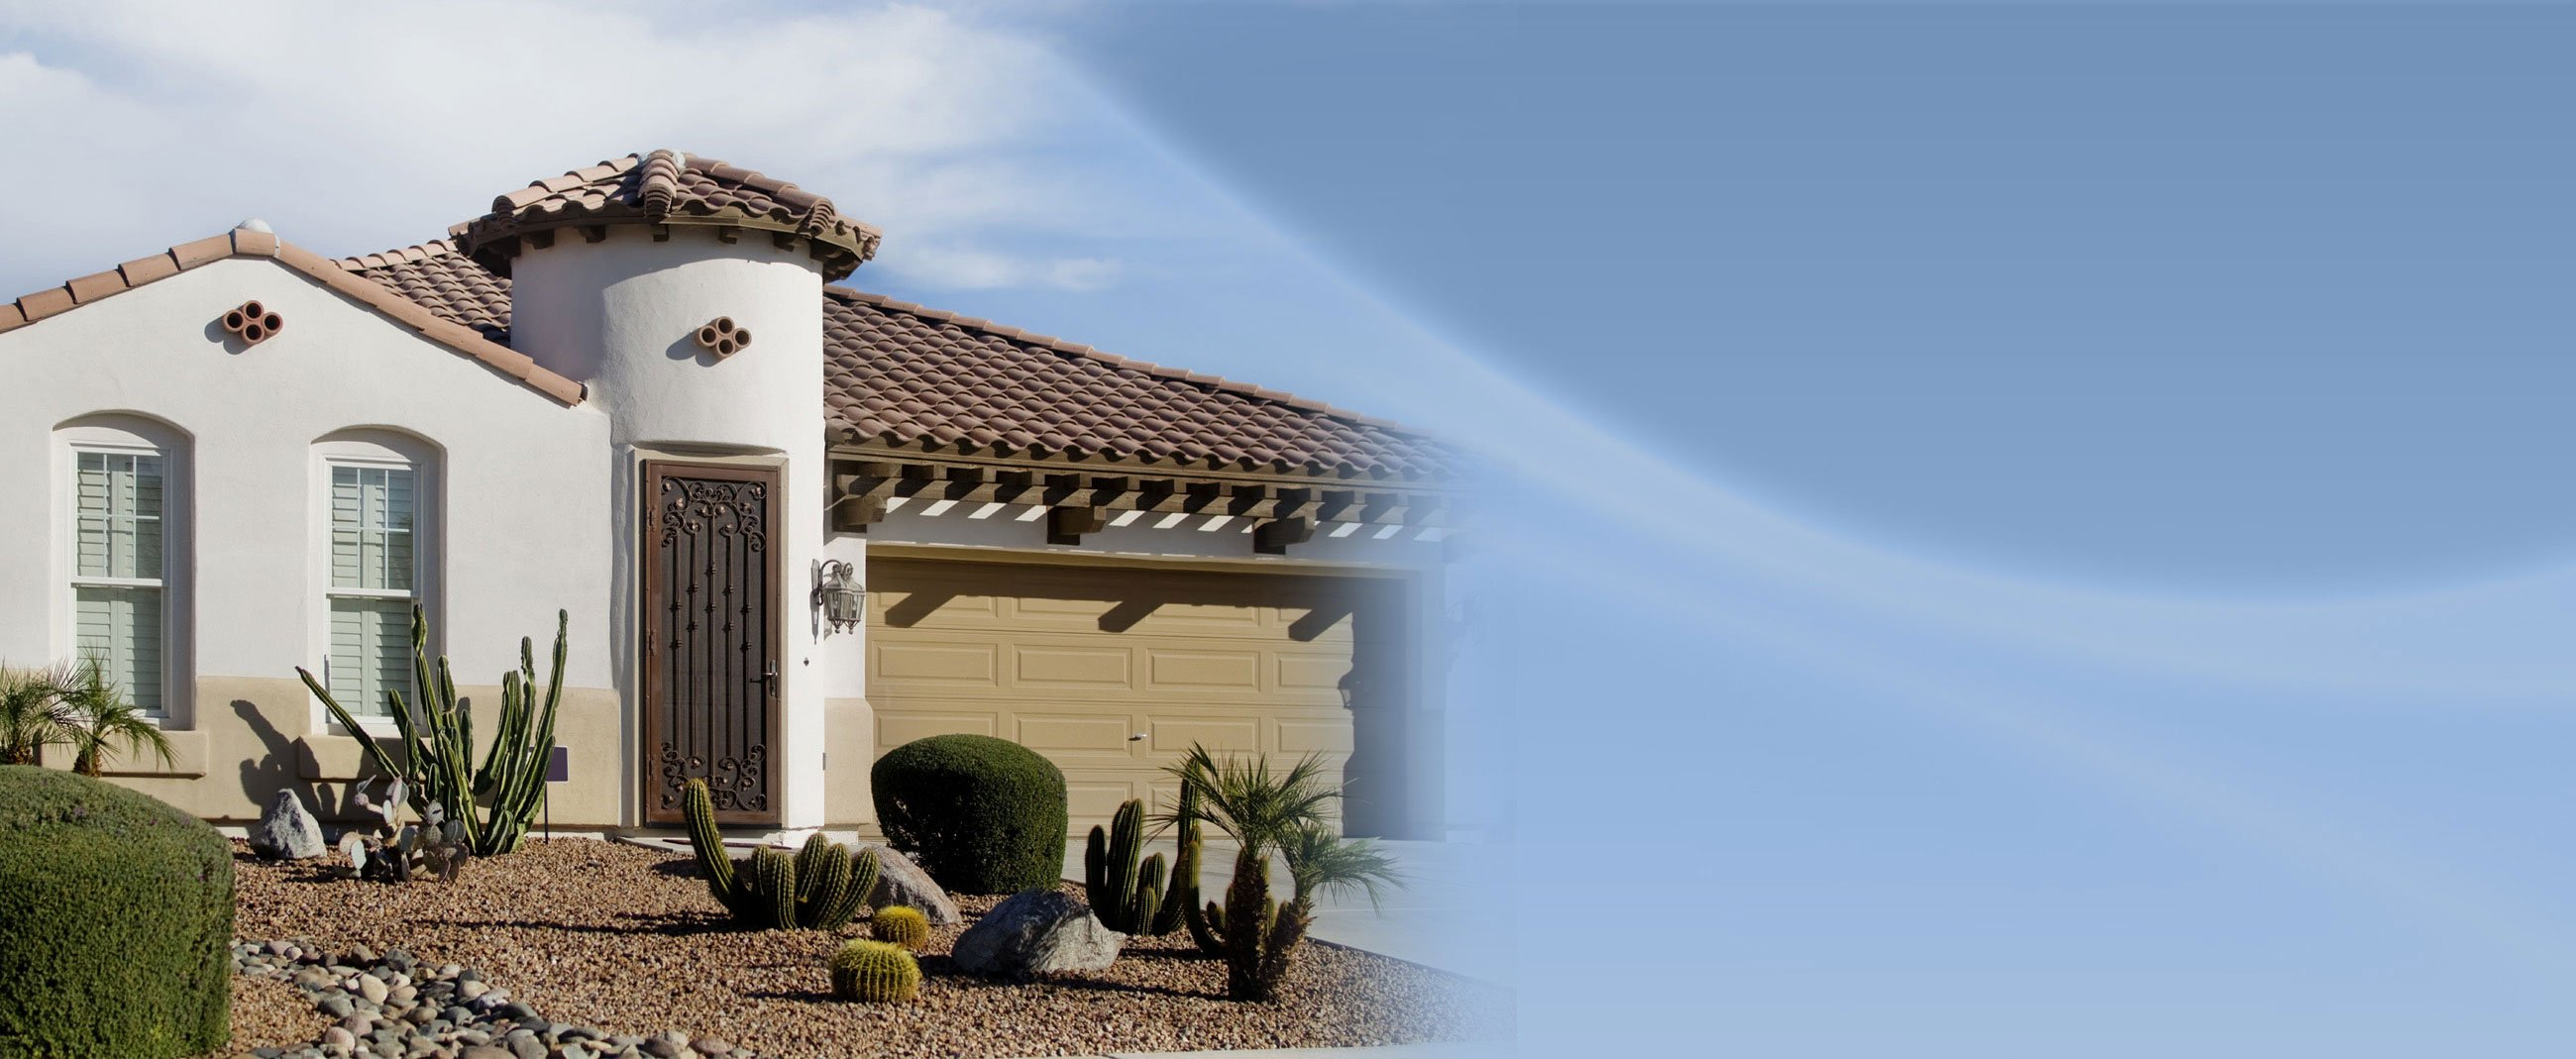 Exterior Painting Services Protegrity Painting Tucson